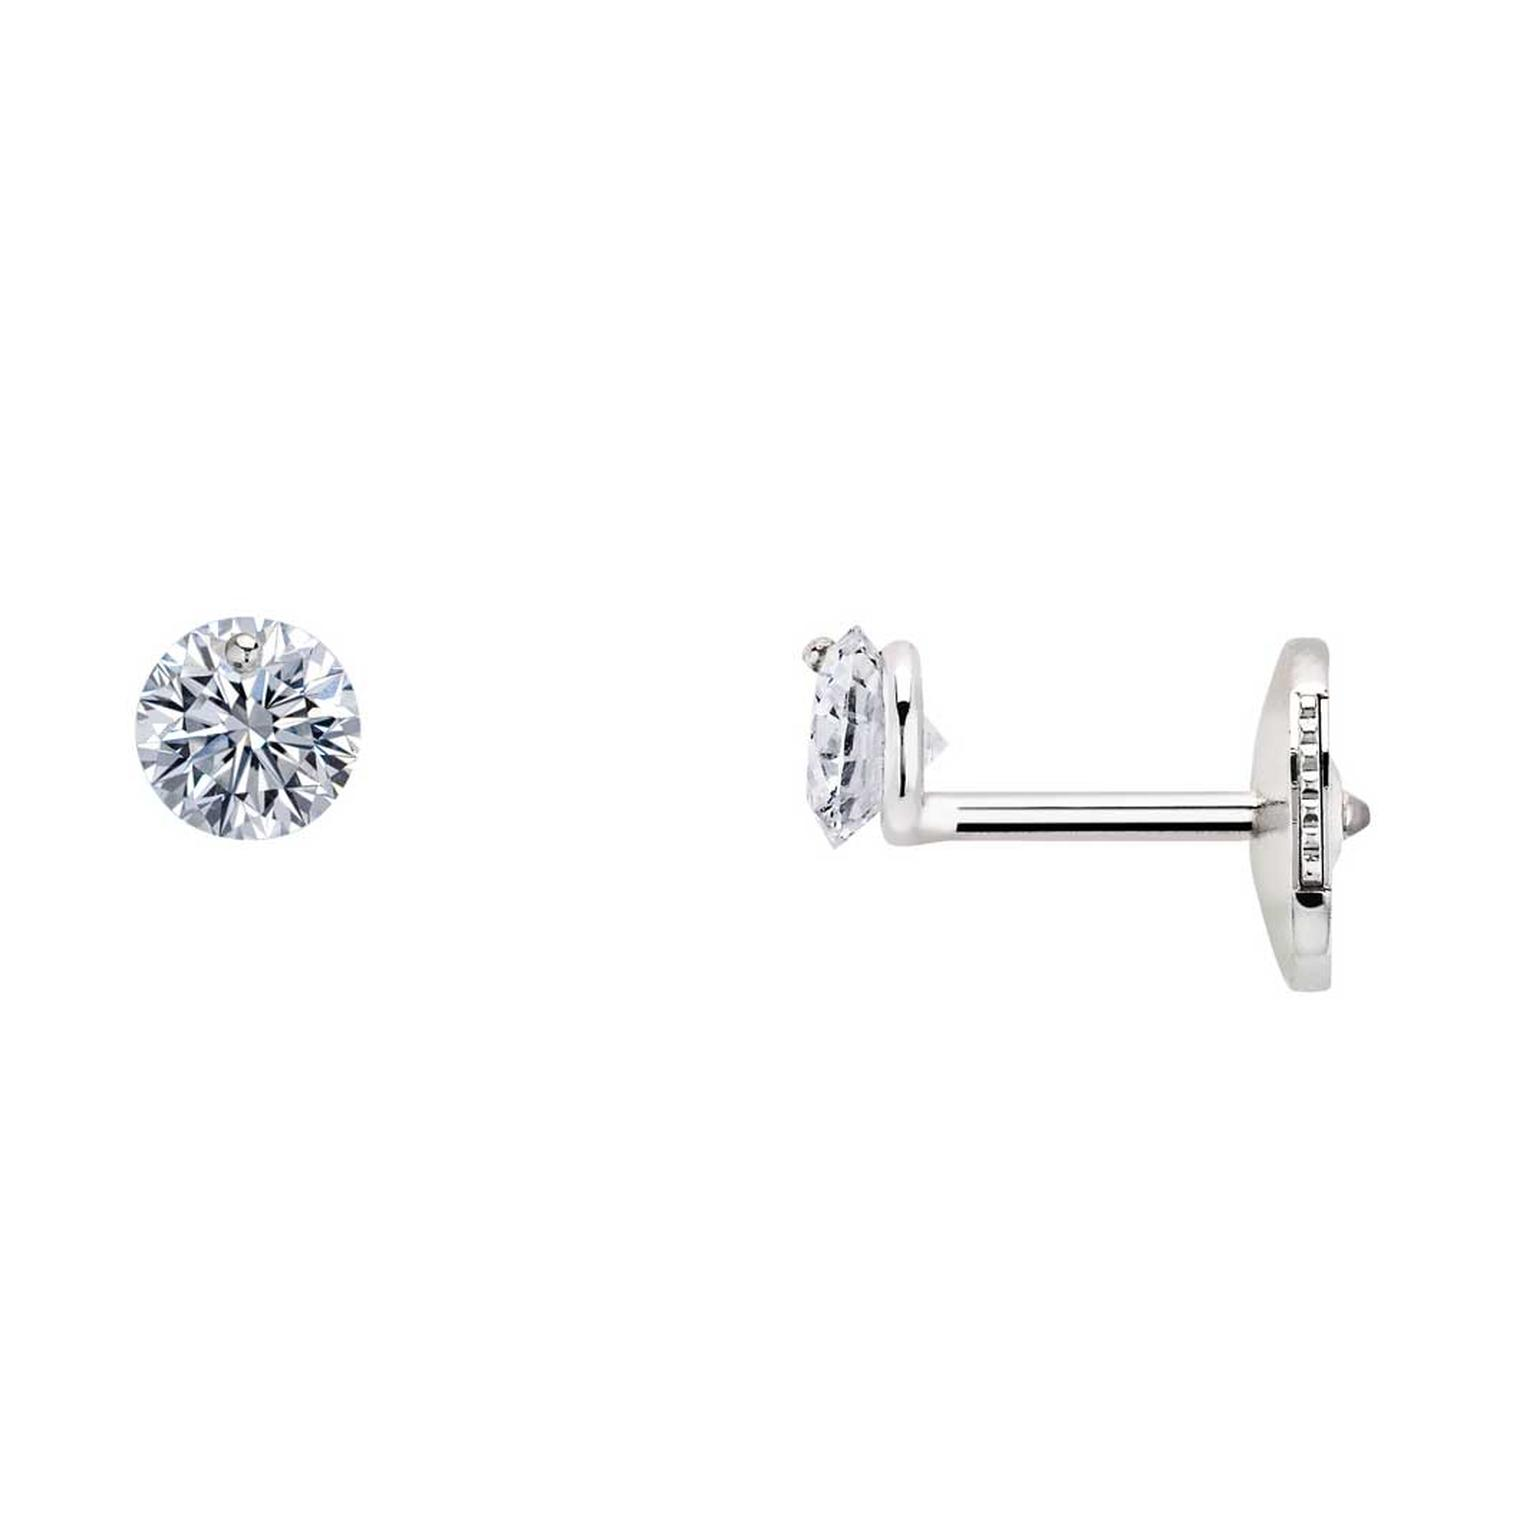 La Brune & La Blonde 360° studs with brilliant-cut diamonds in white gold